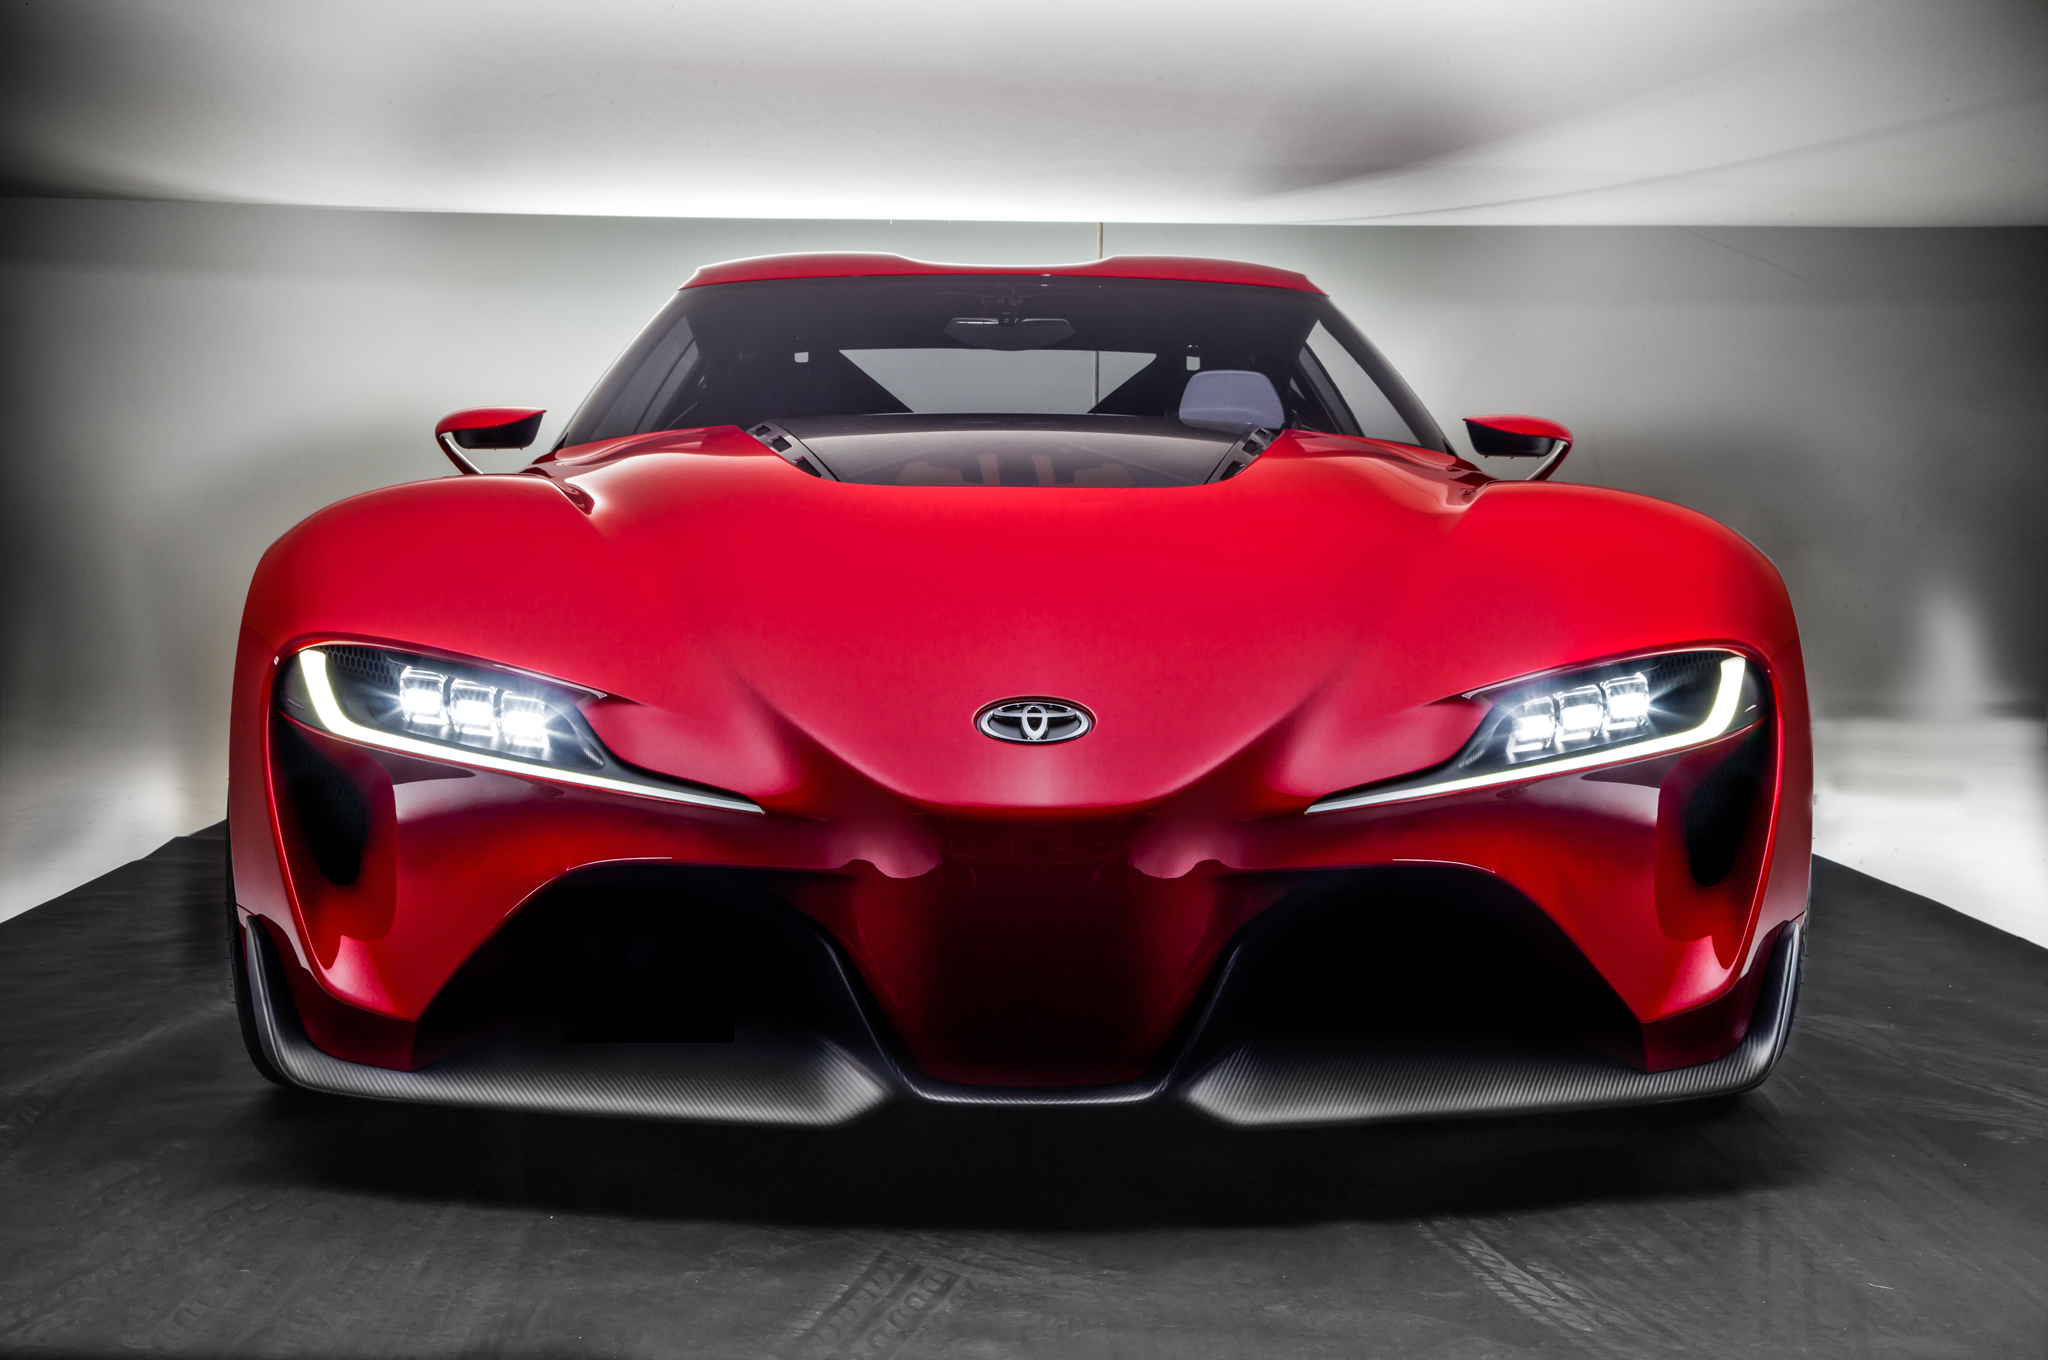 Toyota FT 1 Wallpapers 2017 2018 Toyota Supra Forum FT 1 Concept MKV 2048x1360